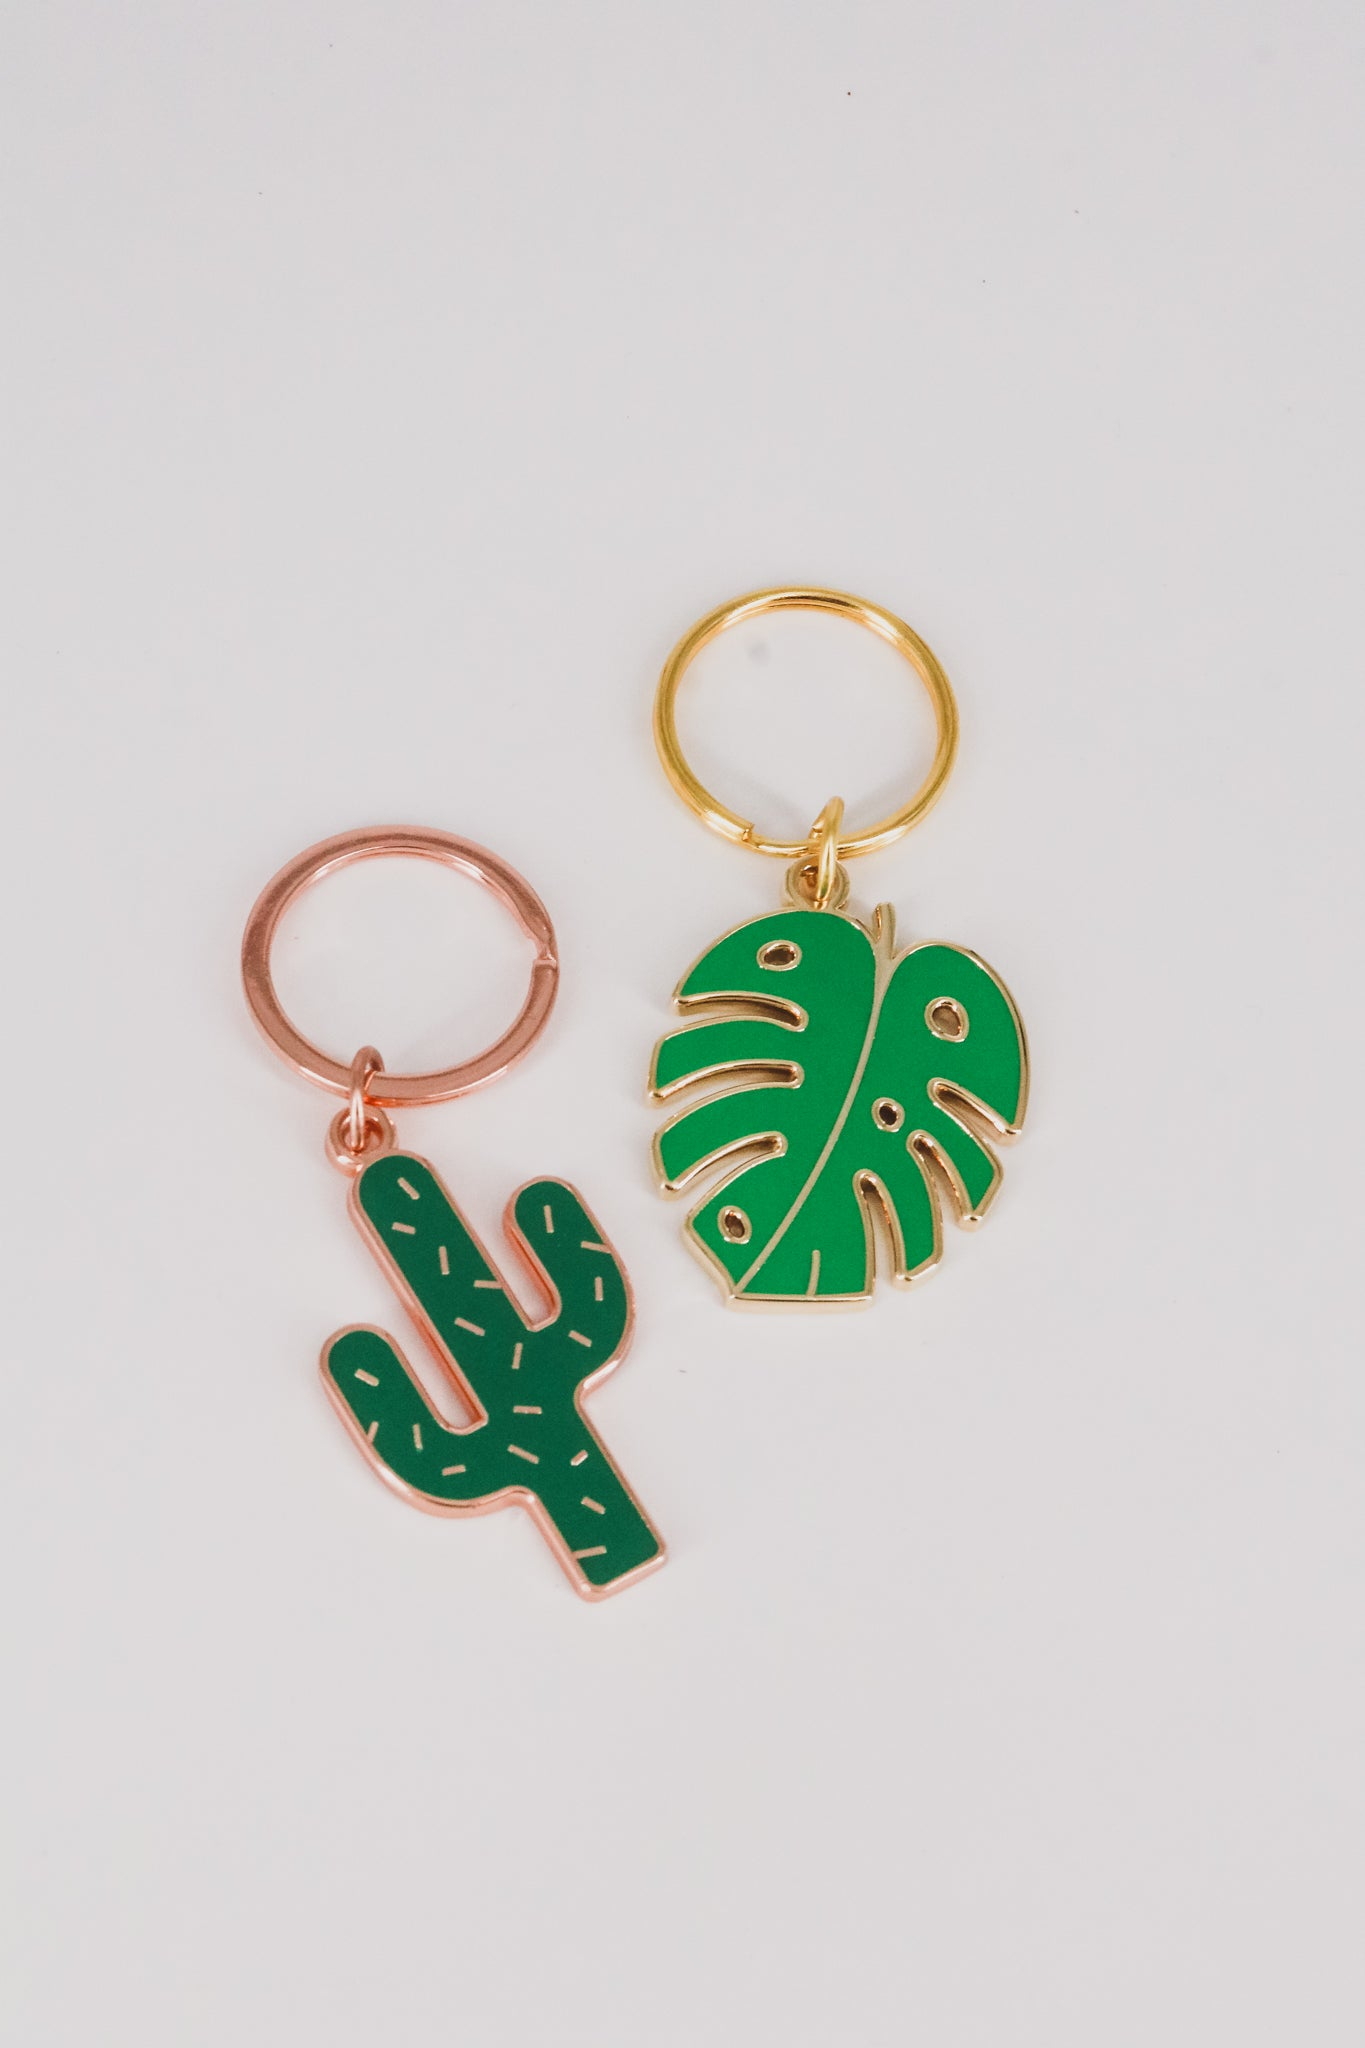 Cute Keychain 1 - JQ Clothing Co. - Oakes, ND